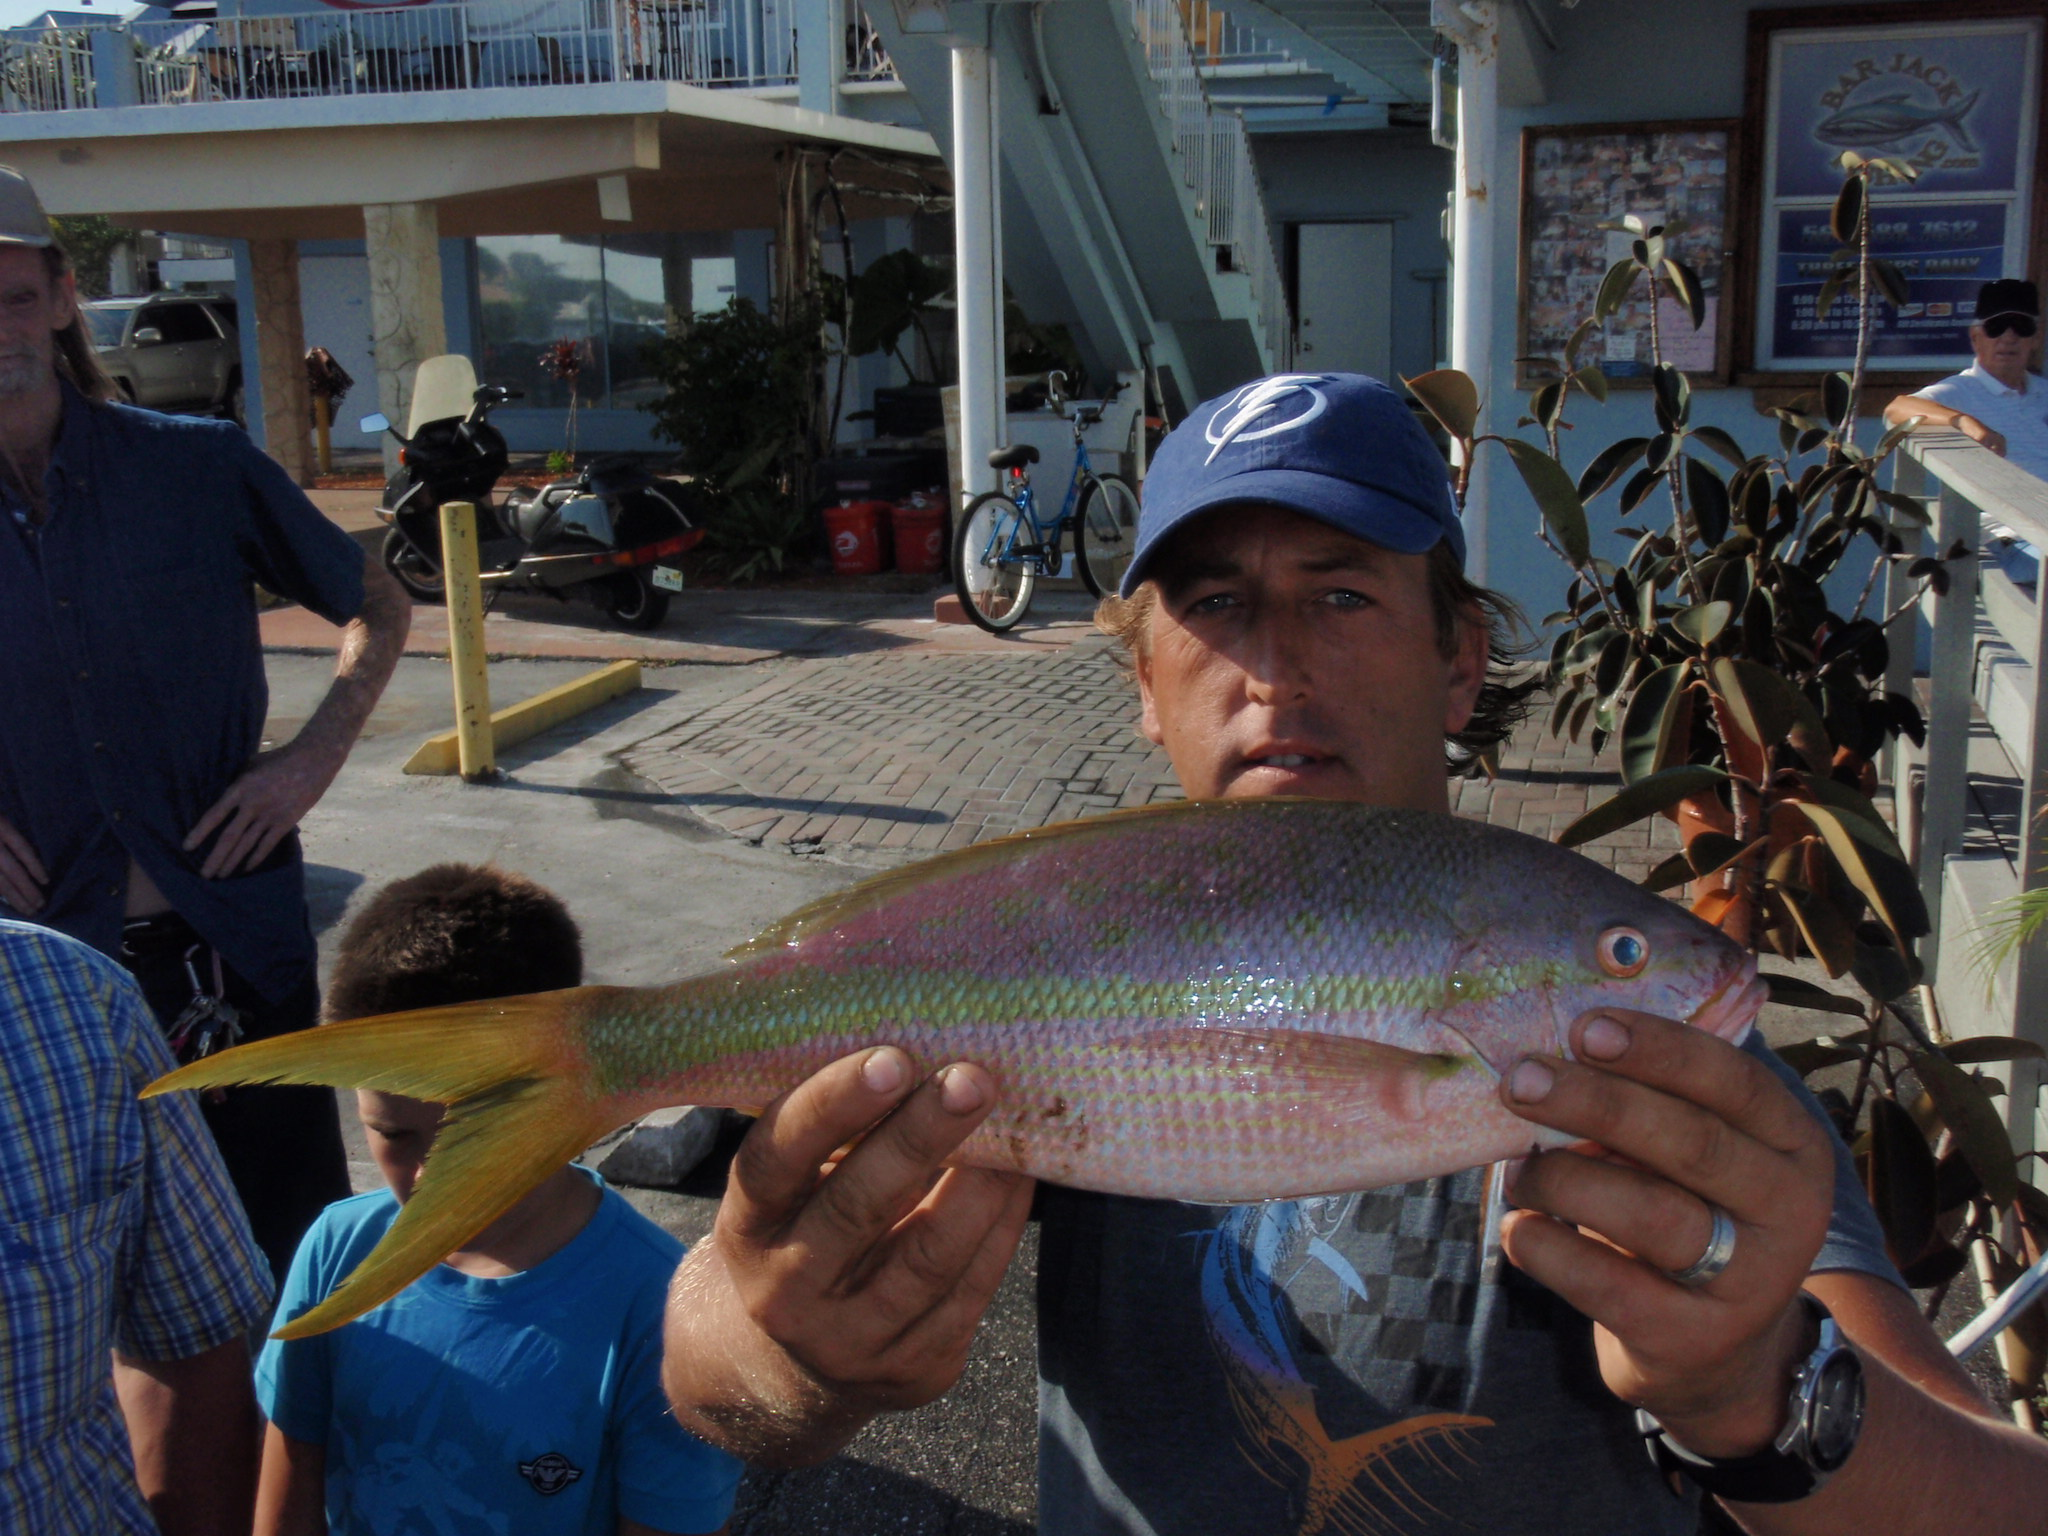 Family party boat west palm beach bar jack fishing and for Deep sea fishing west palm beach